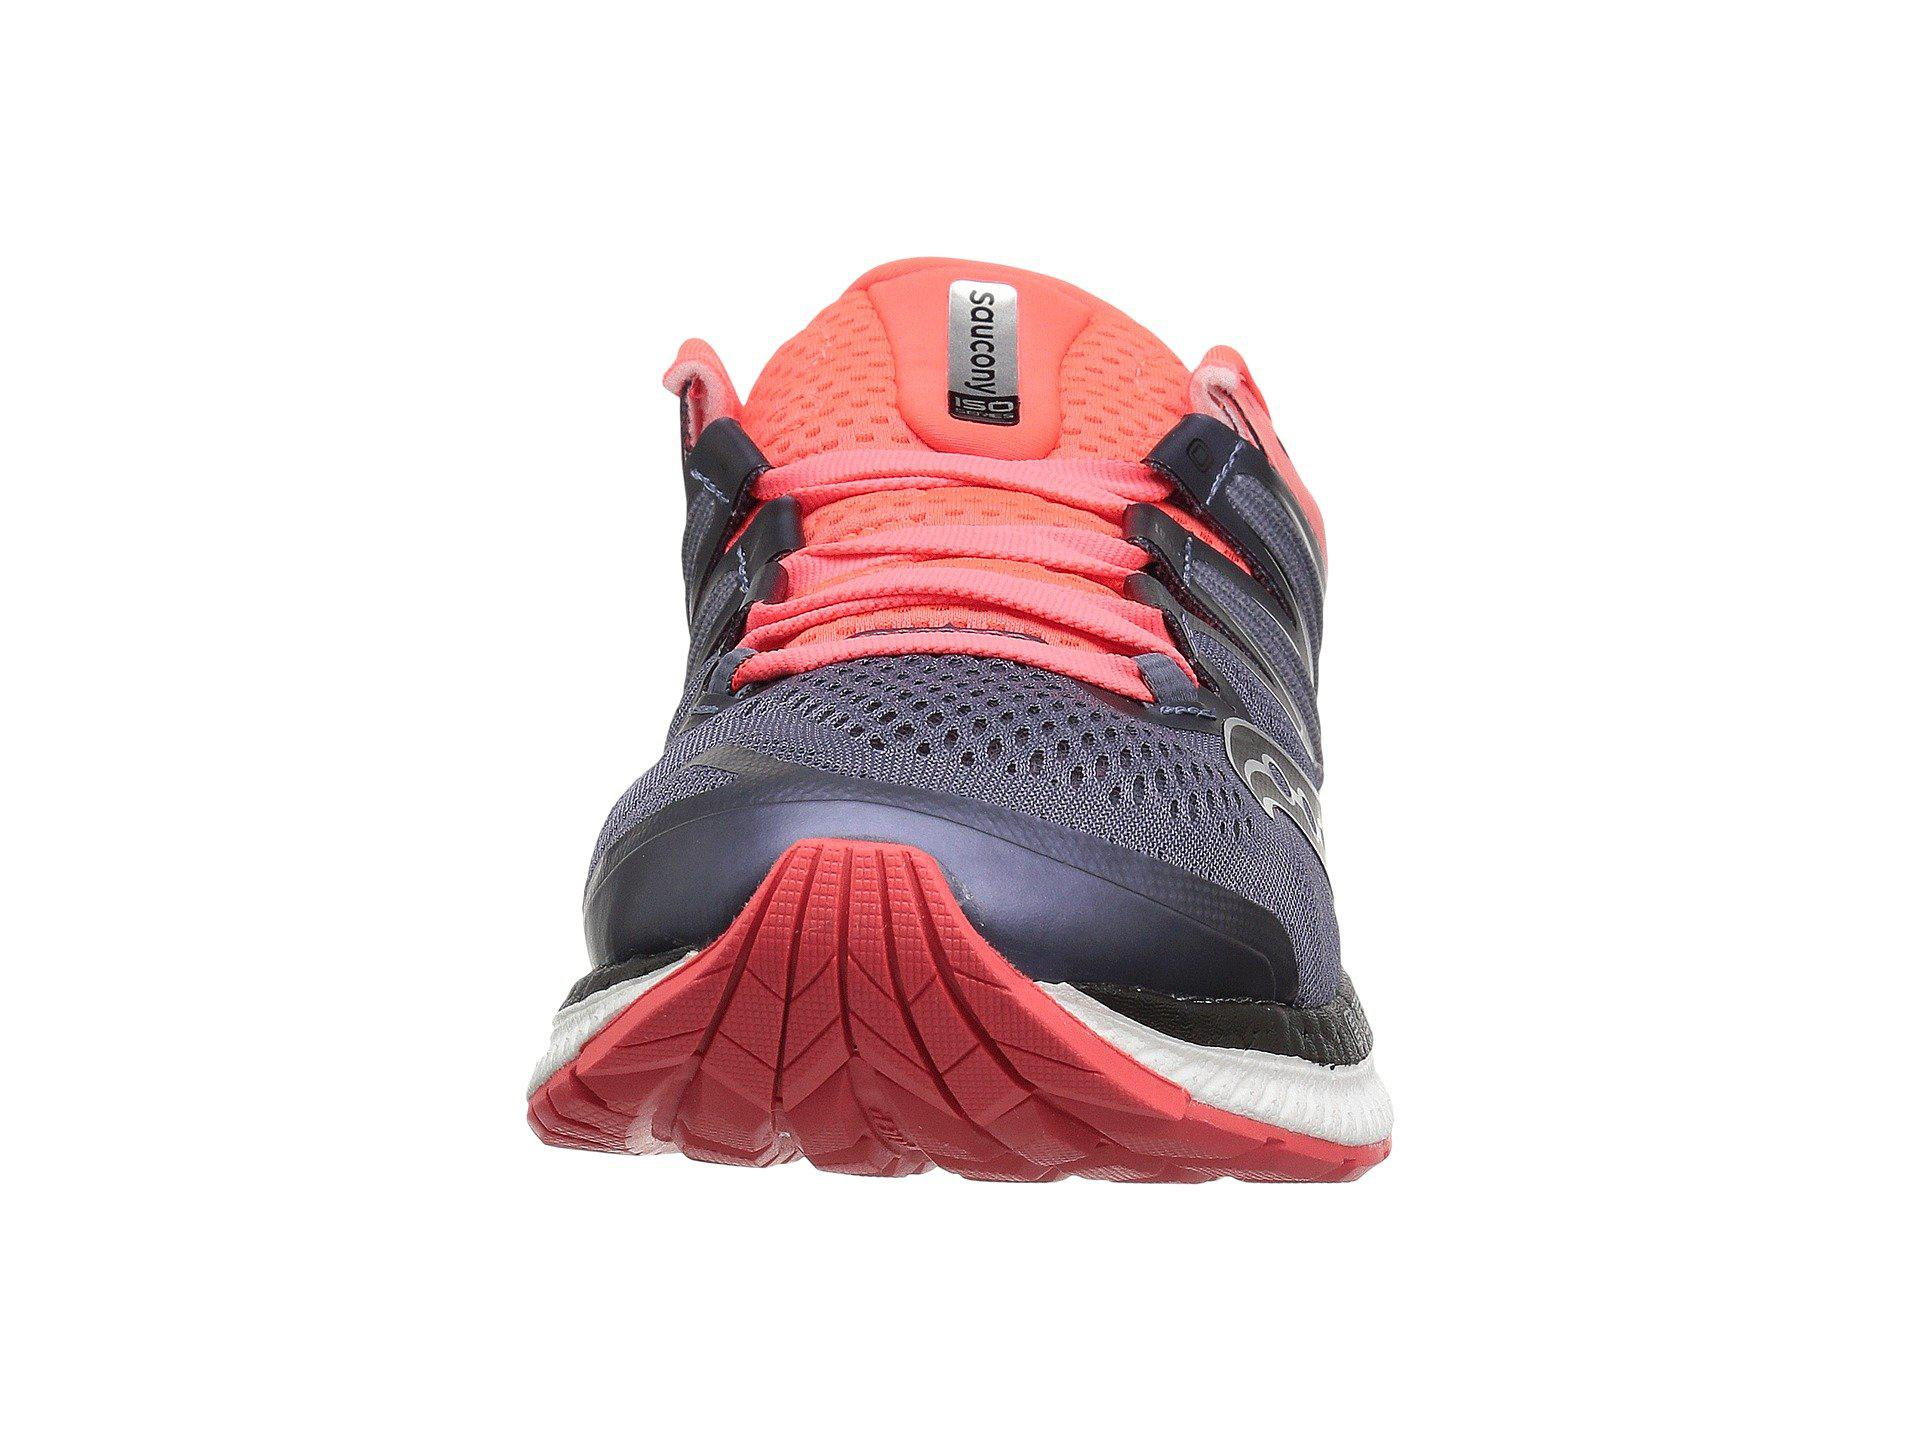 Saucony Hurricane Iso 4 Grey Black Vizi Red Women S